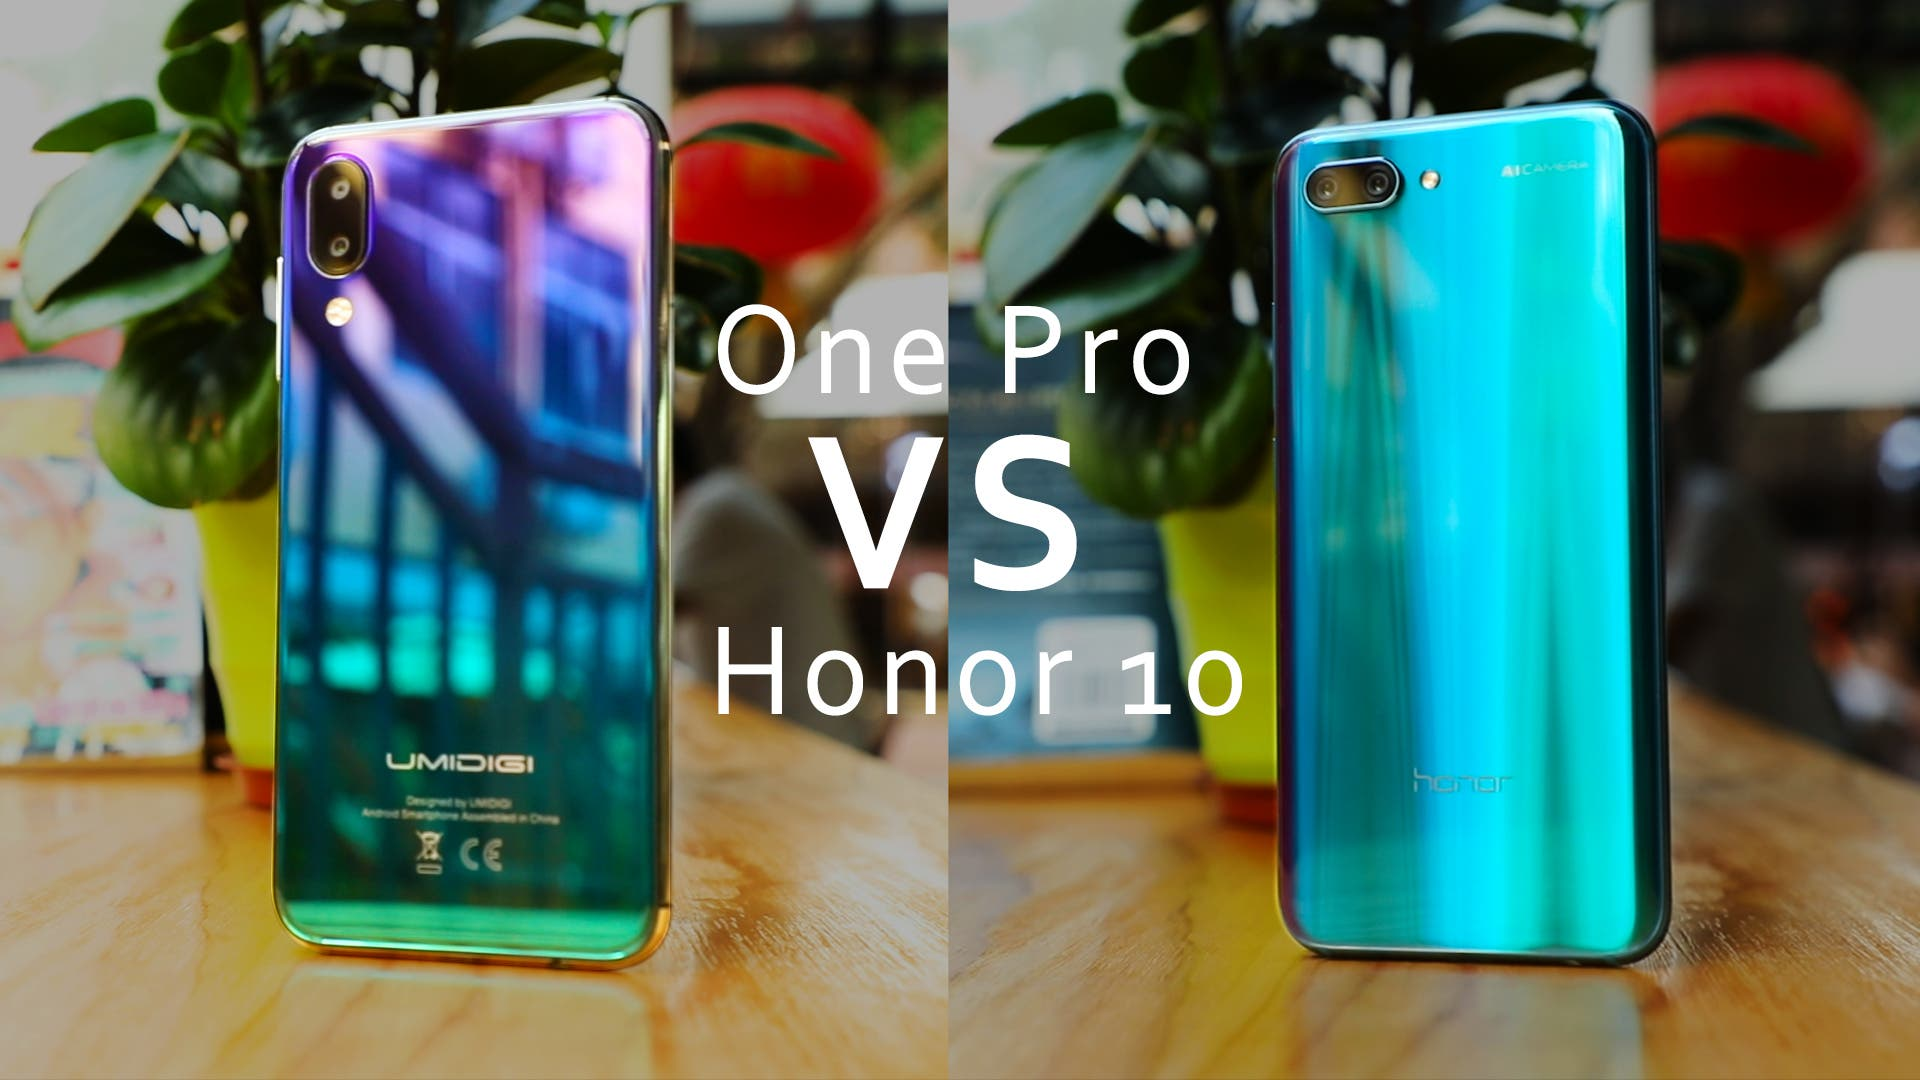 UMIDIGI One Pro VS Honor 10